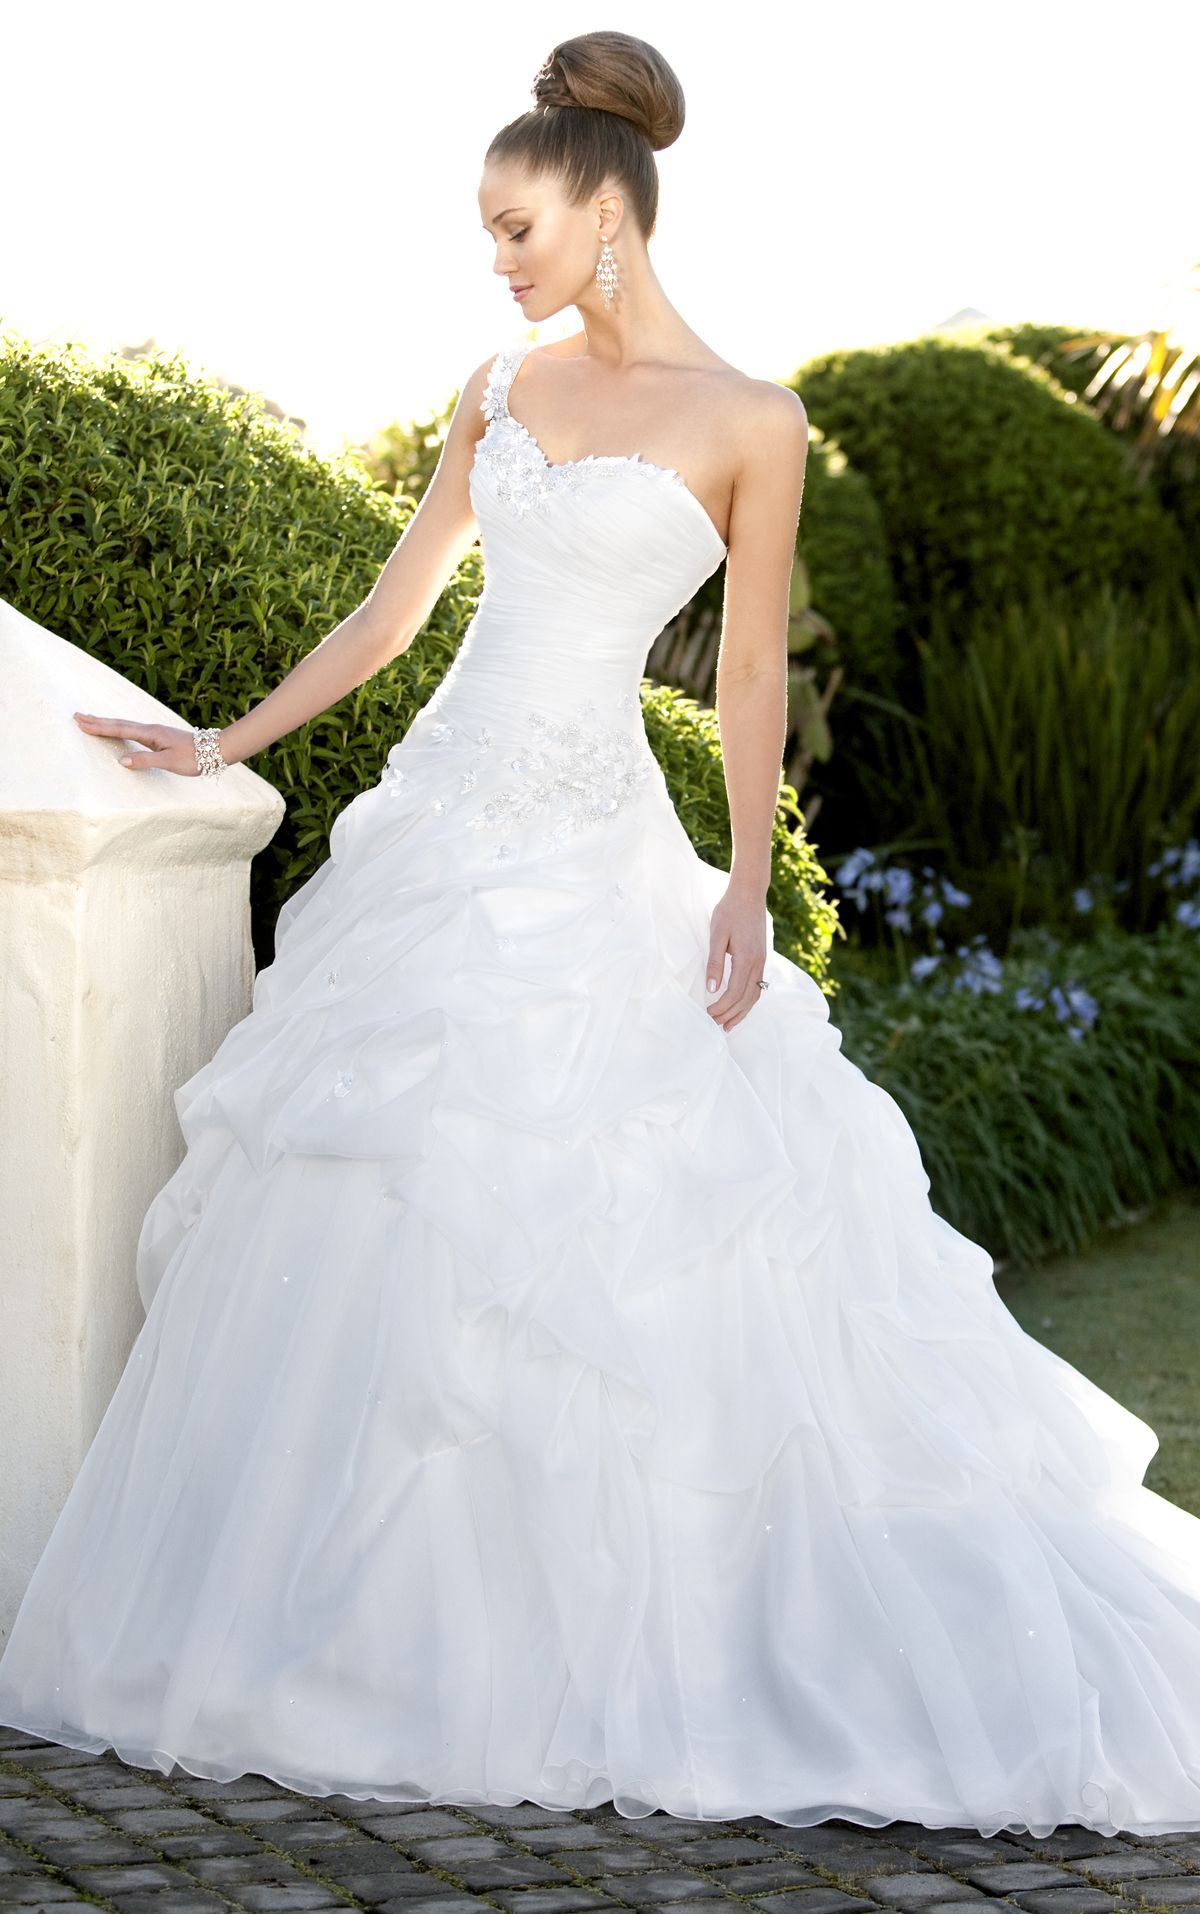 Plus size wedding dresses with red accents  Why I pinned it I love the sweetheart top accented with a Swarovski